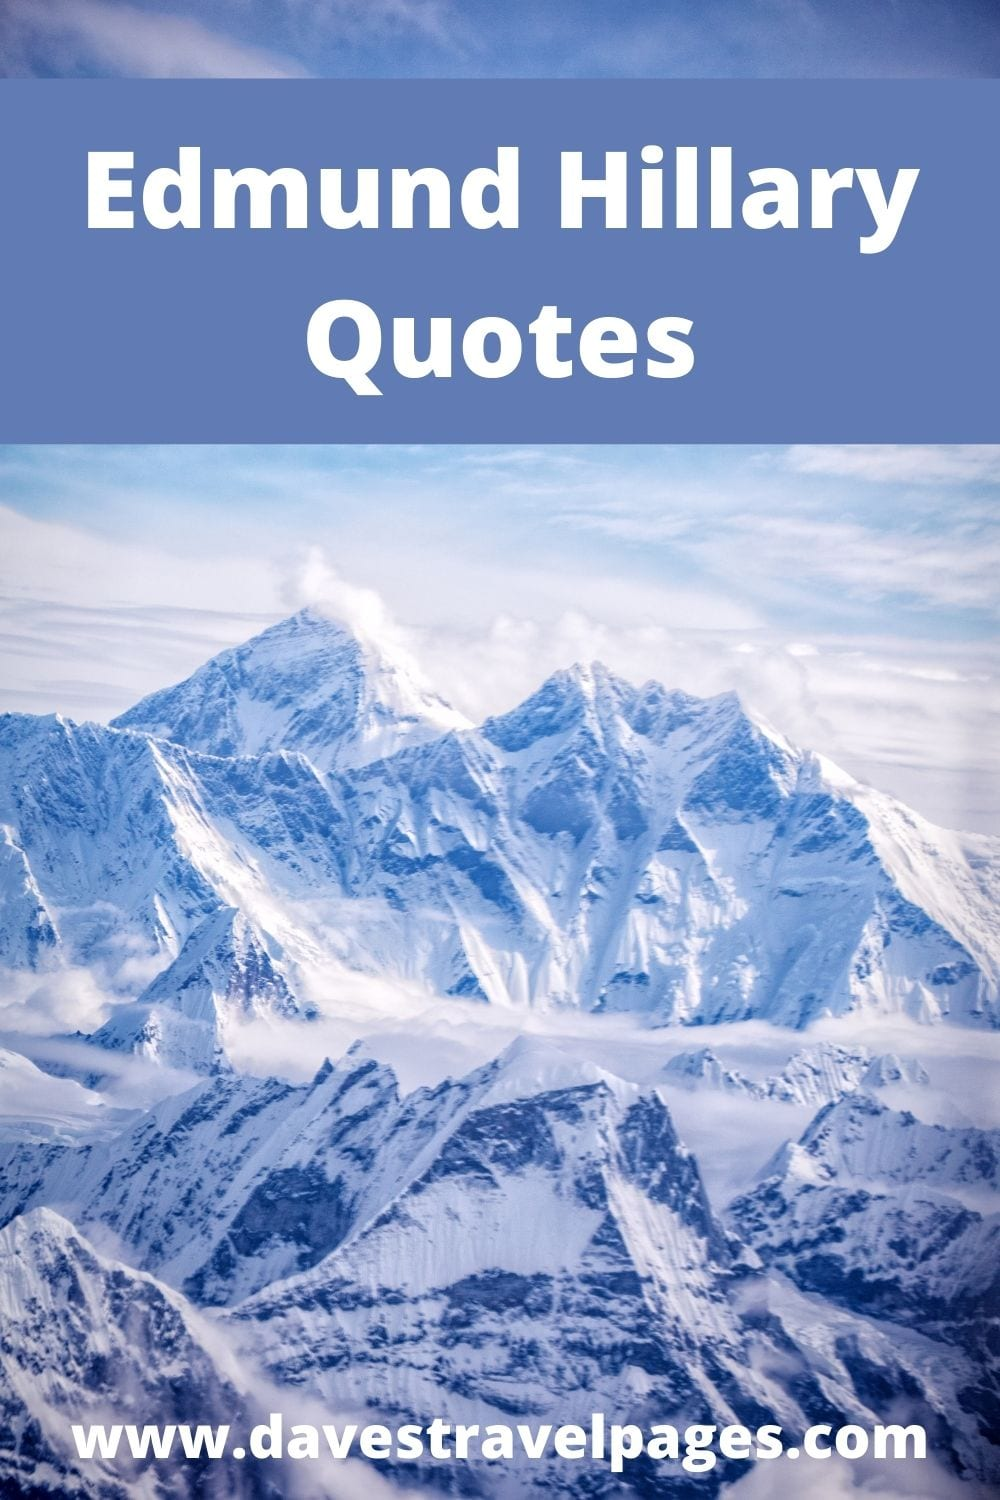 A collection of the best Edmund Hillary Quotes